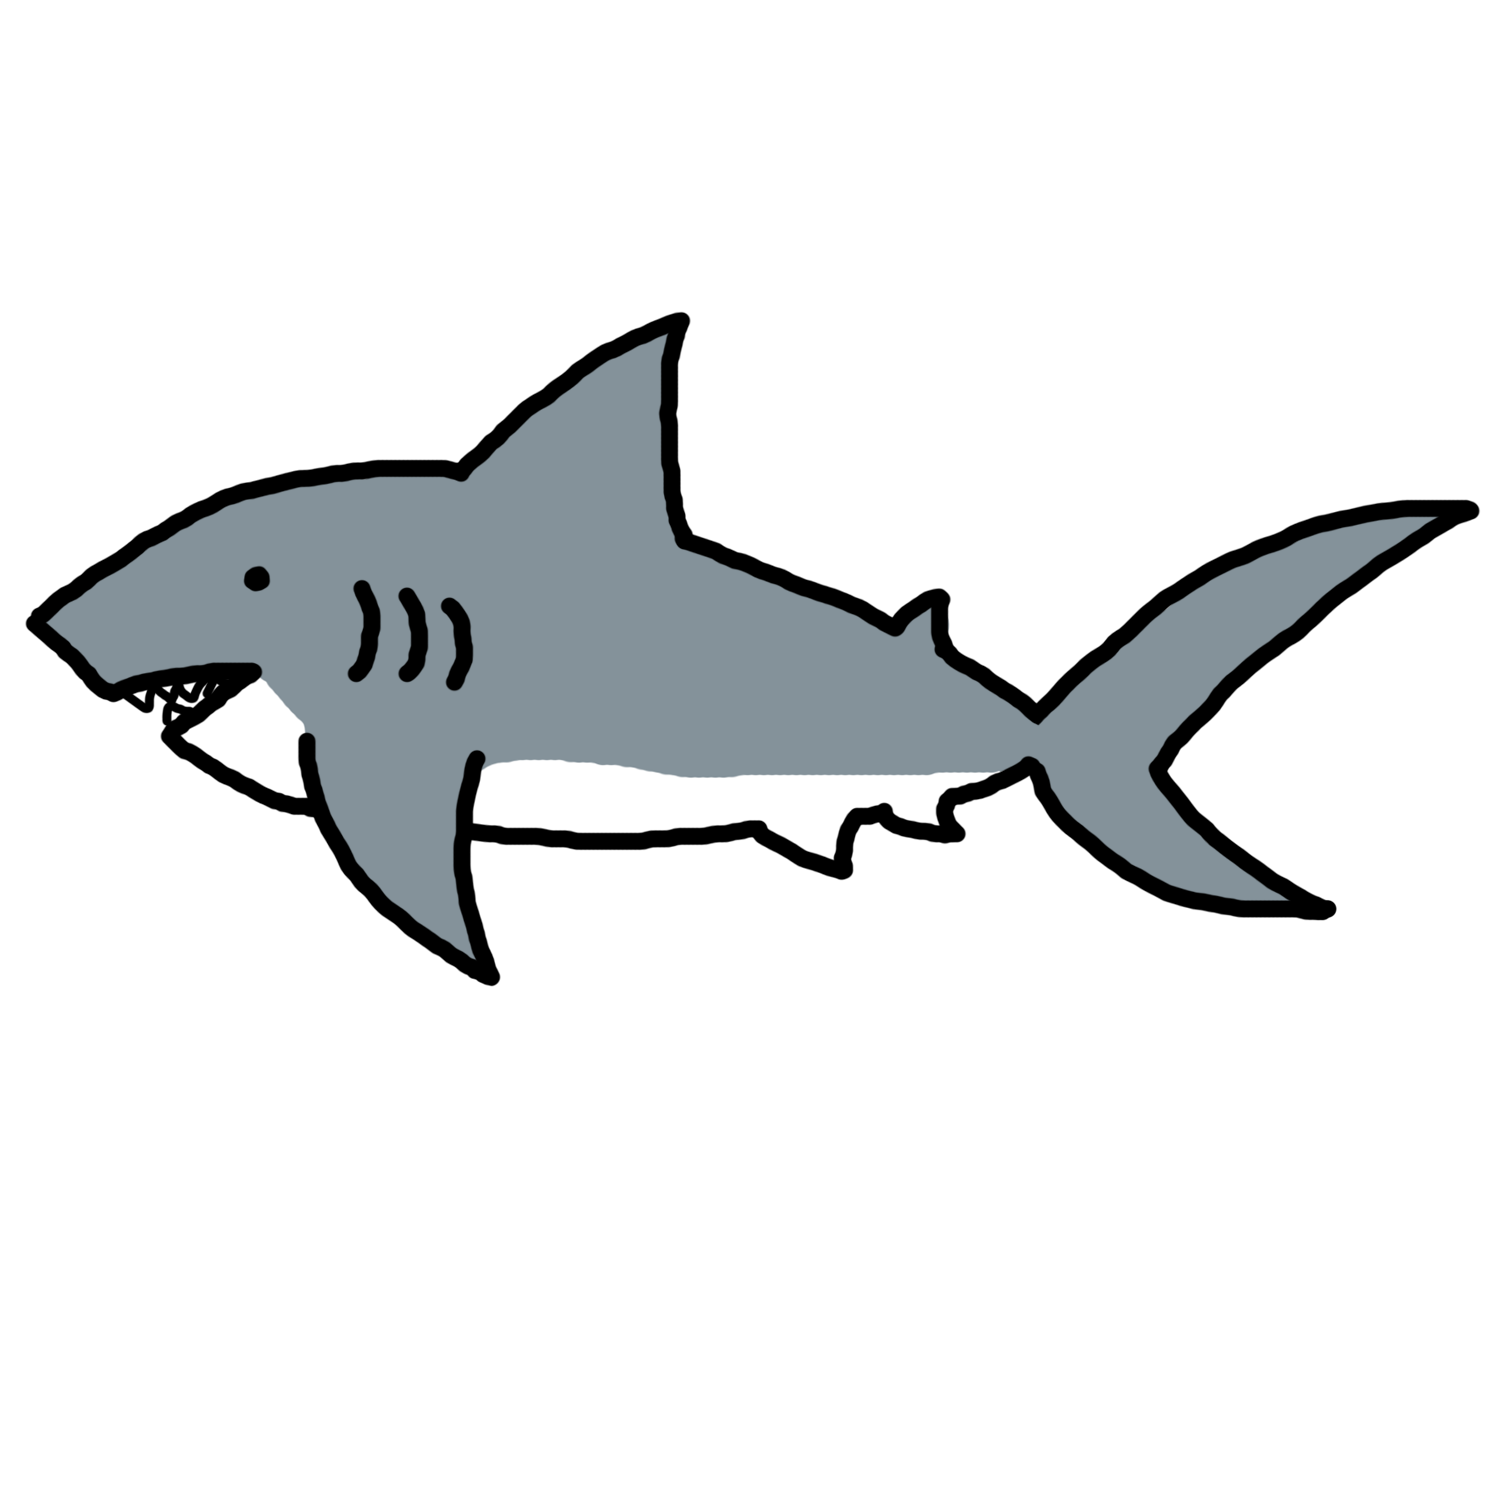 Shark Fin Outline Clipart.